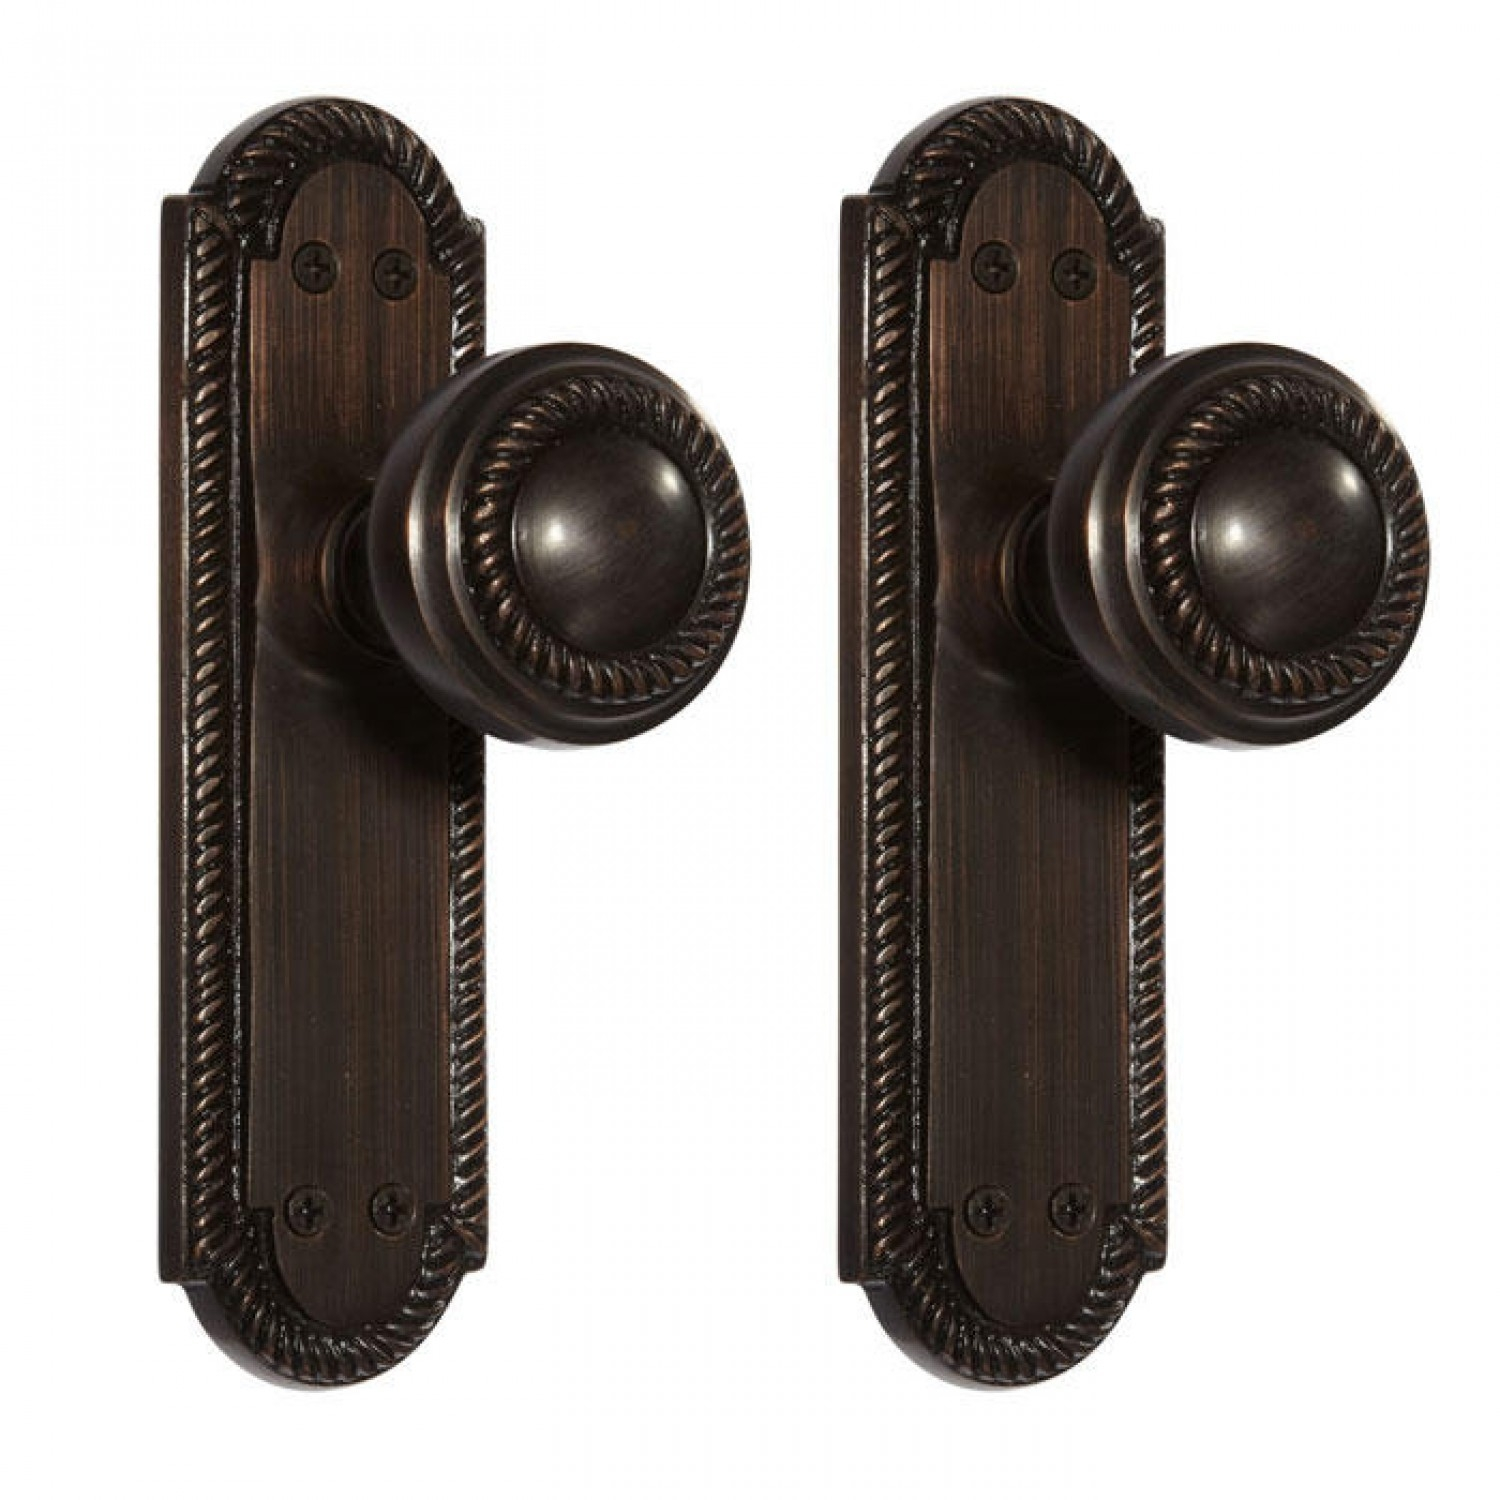 Decorative Door Knob Backplates